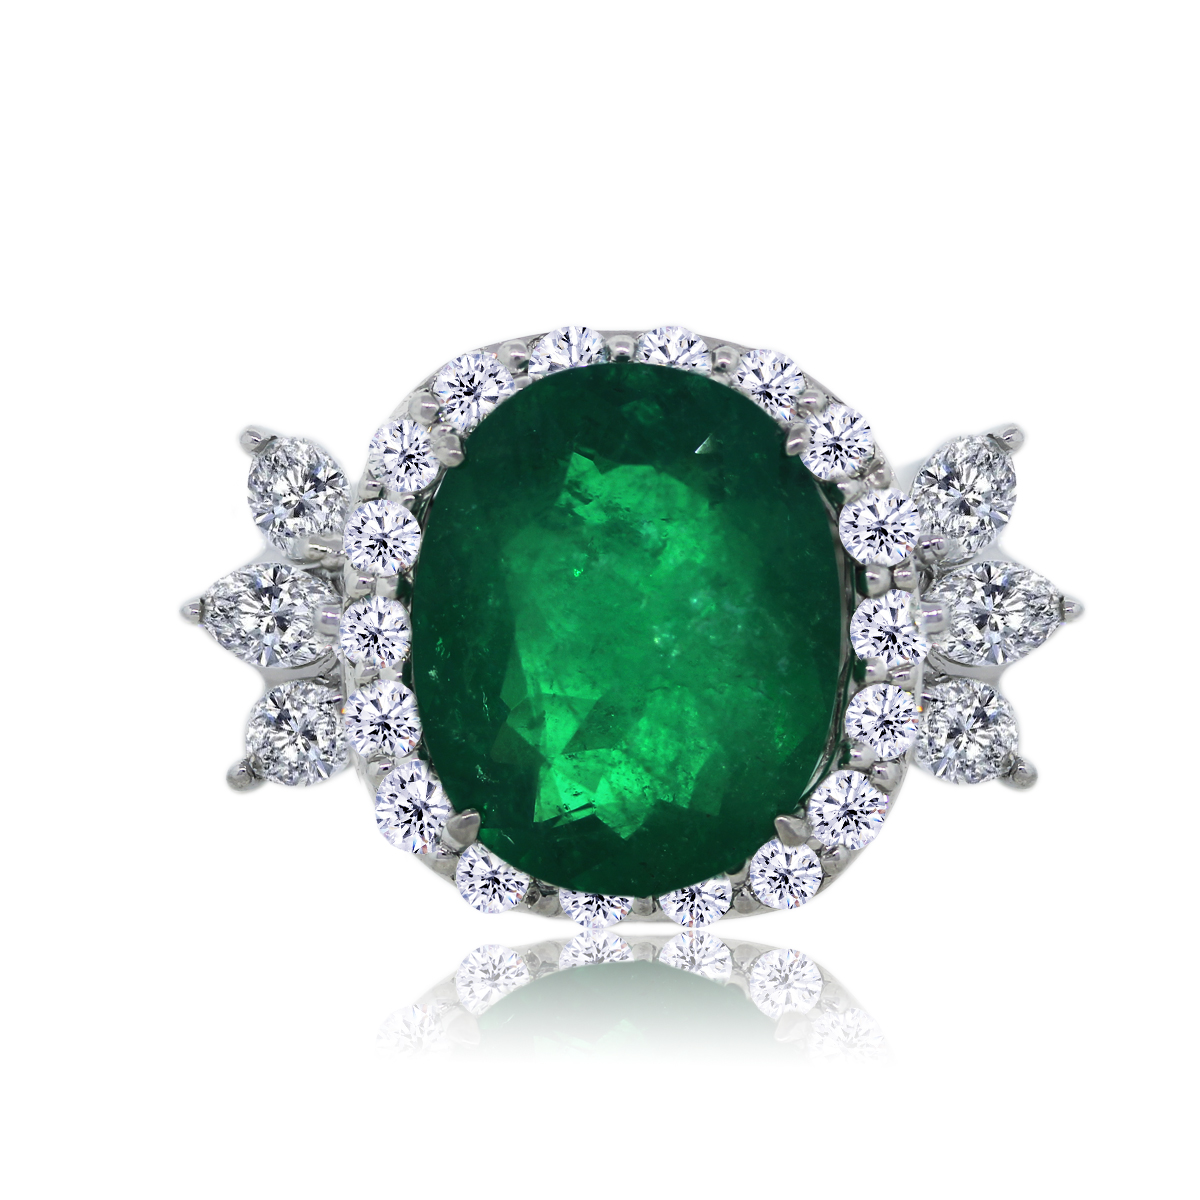 You are Viewing this Platinum Colombian Emerald